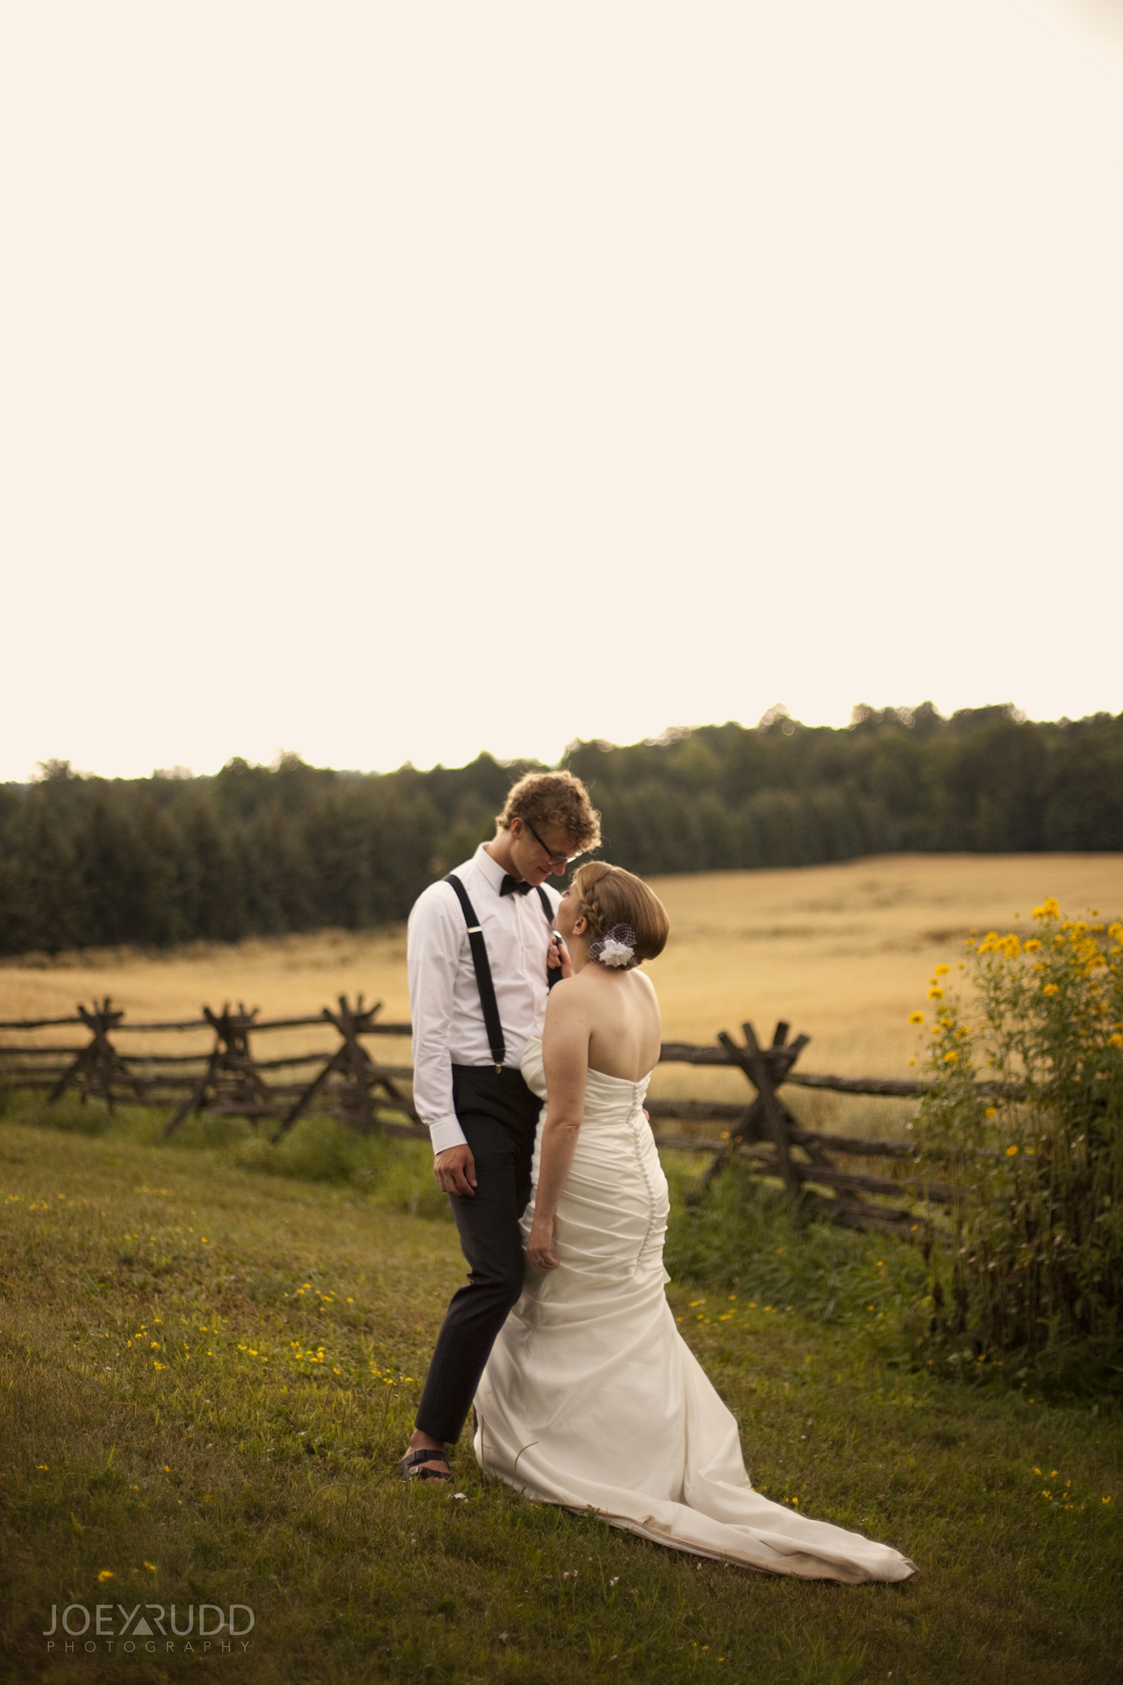 Ottawa Wedding Photographer Joey Rudd Photography Evermore